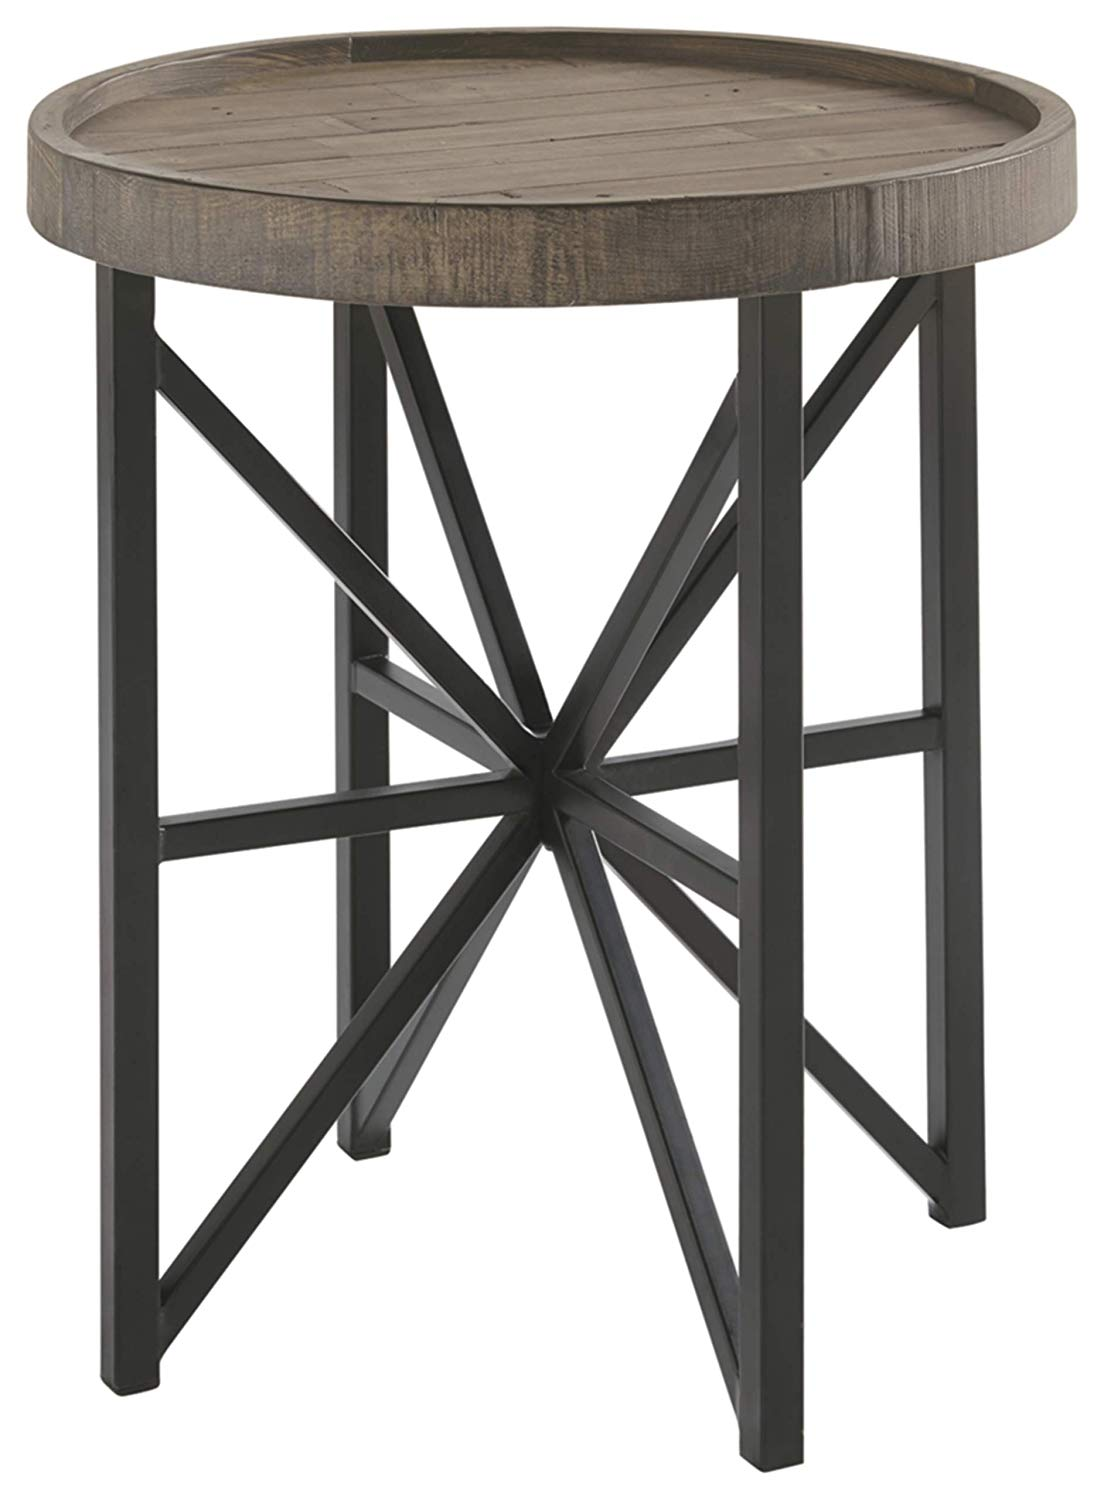 ashley furniture signature design cazentine gray brown end tables contemporary rustic round table distressed top grayish black kitchen dining super narrow making things from